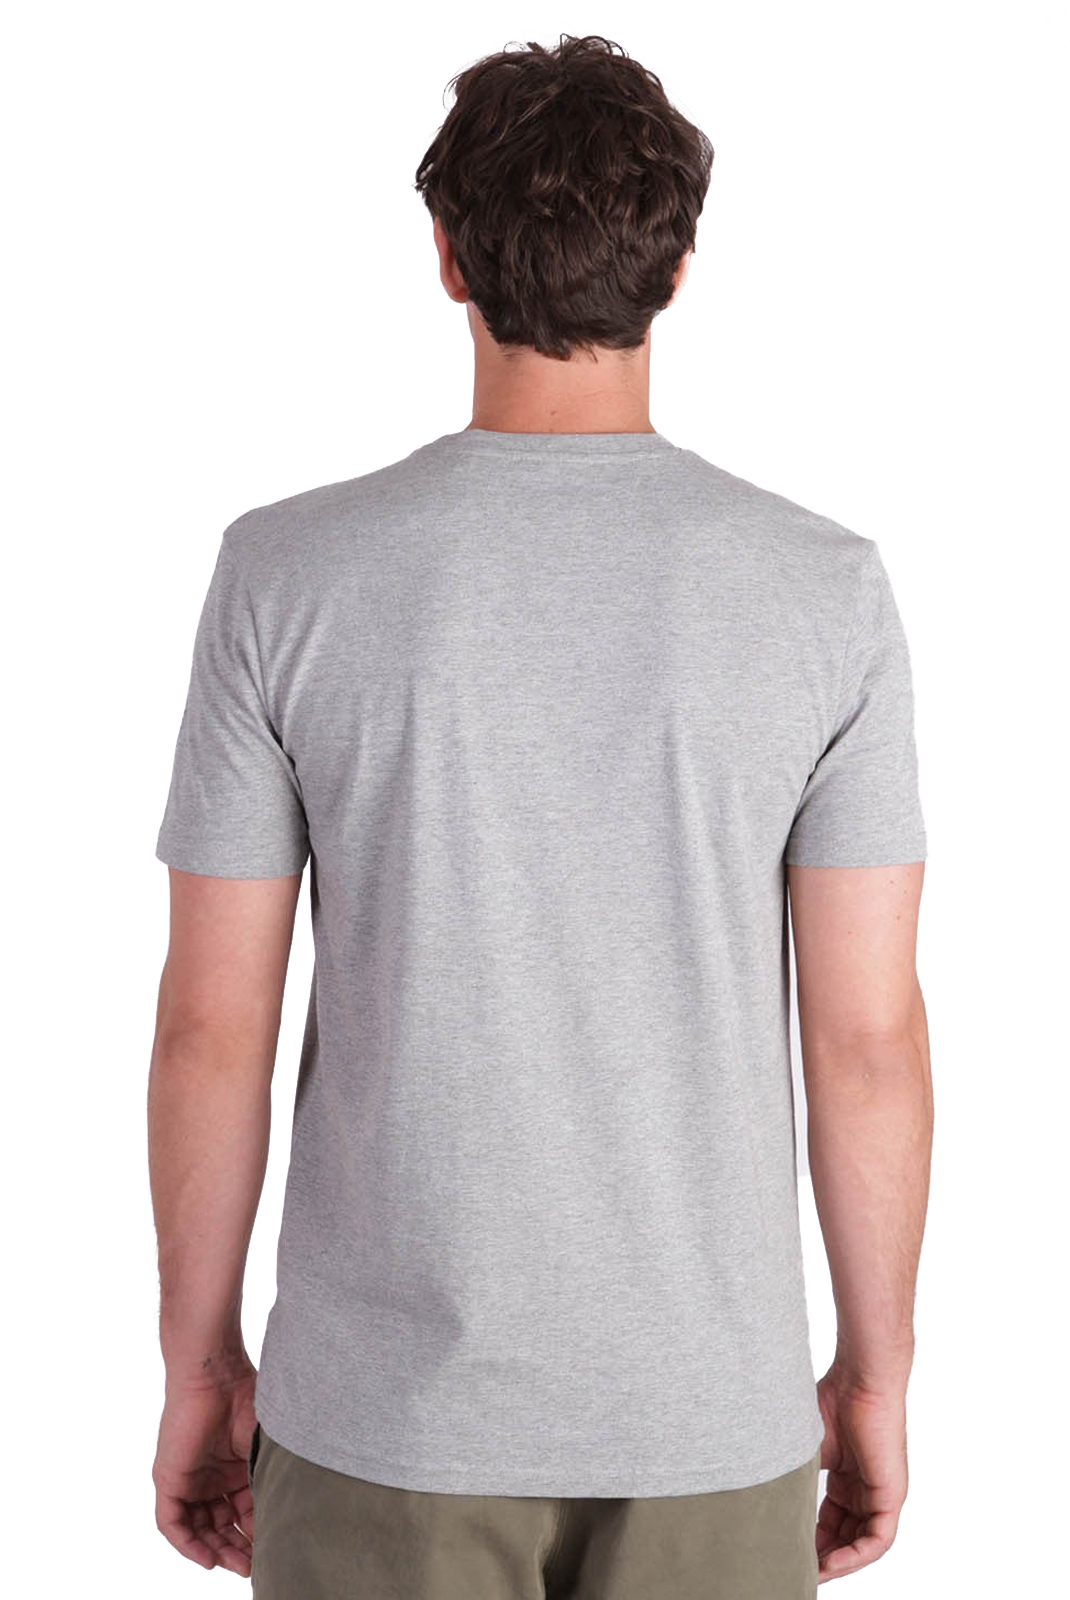 KAPORAL TEE-SHIRT OLARK GRIS AVEC INSCRIPTION RELIEF HOMME